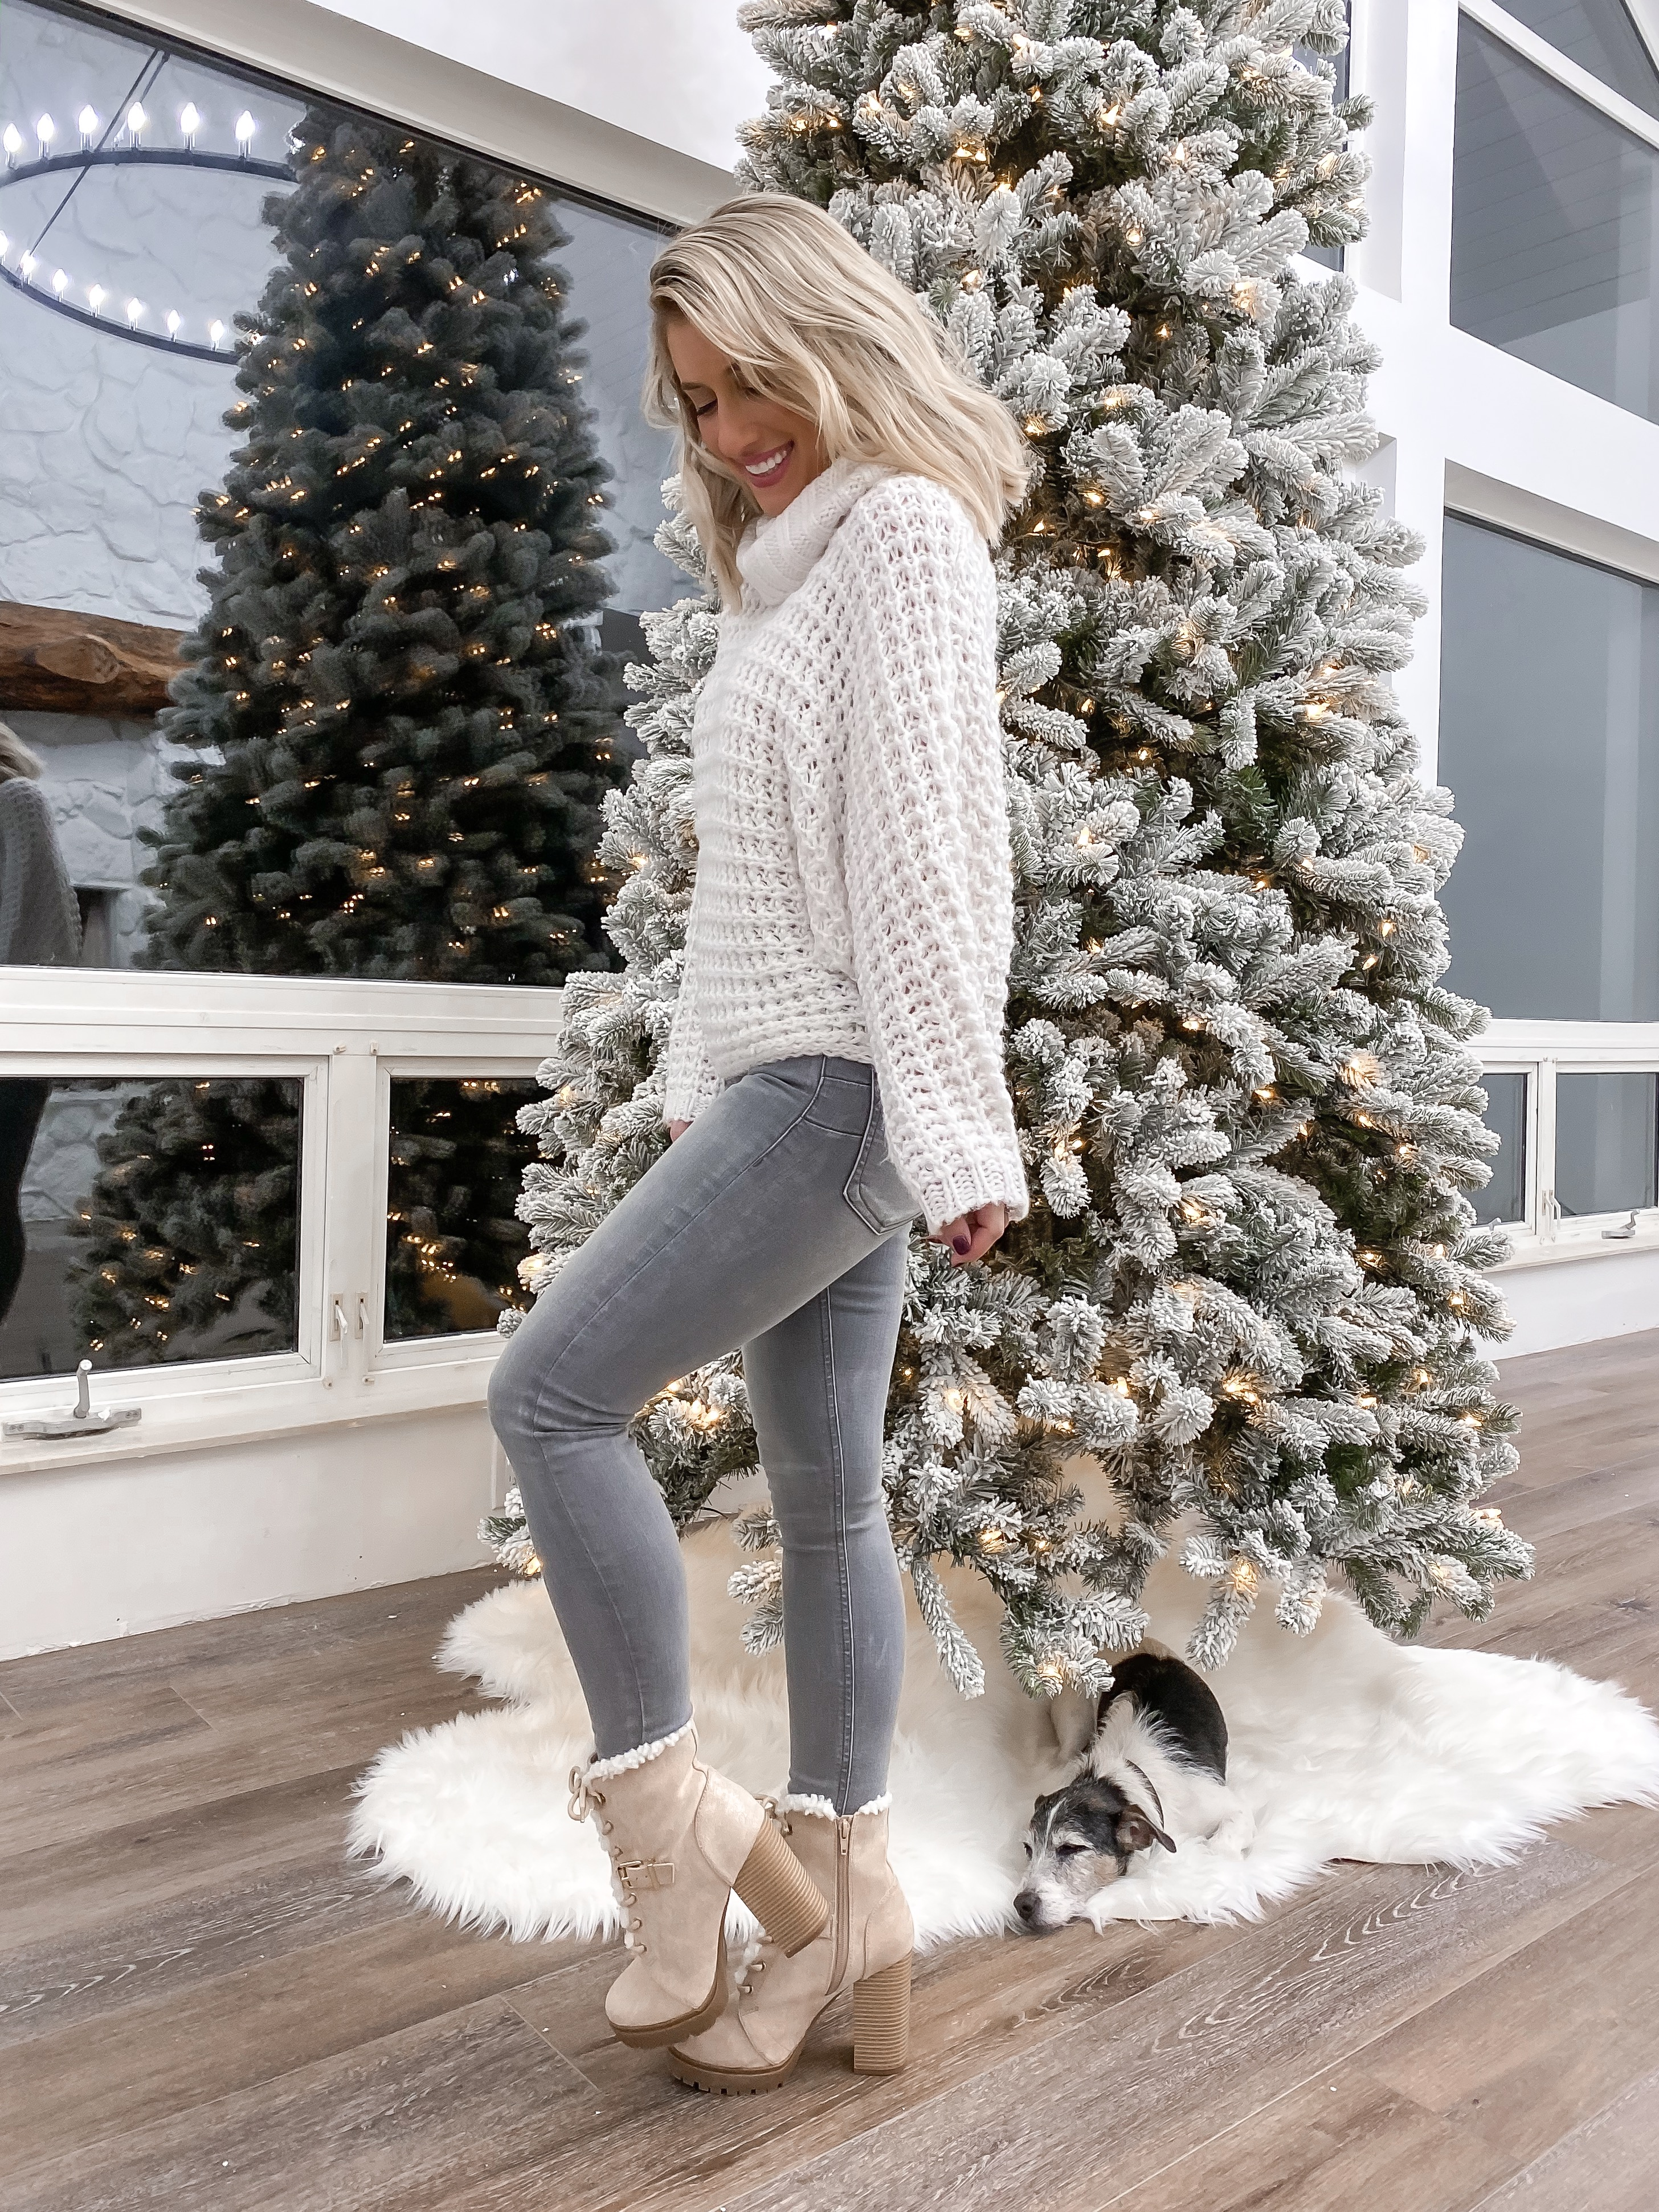 2 Laura Beverlin cozy winter outfit thanksgiving casual christmas outfit idea 8